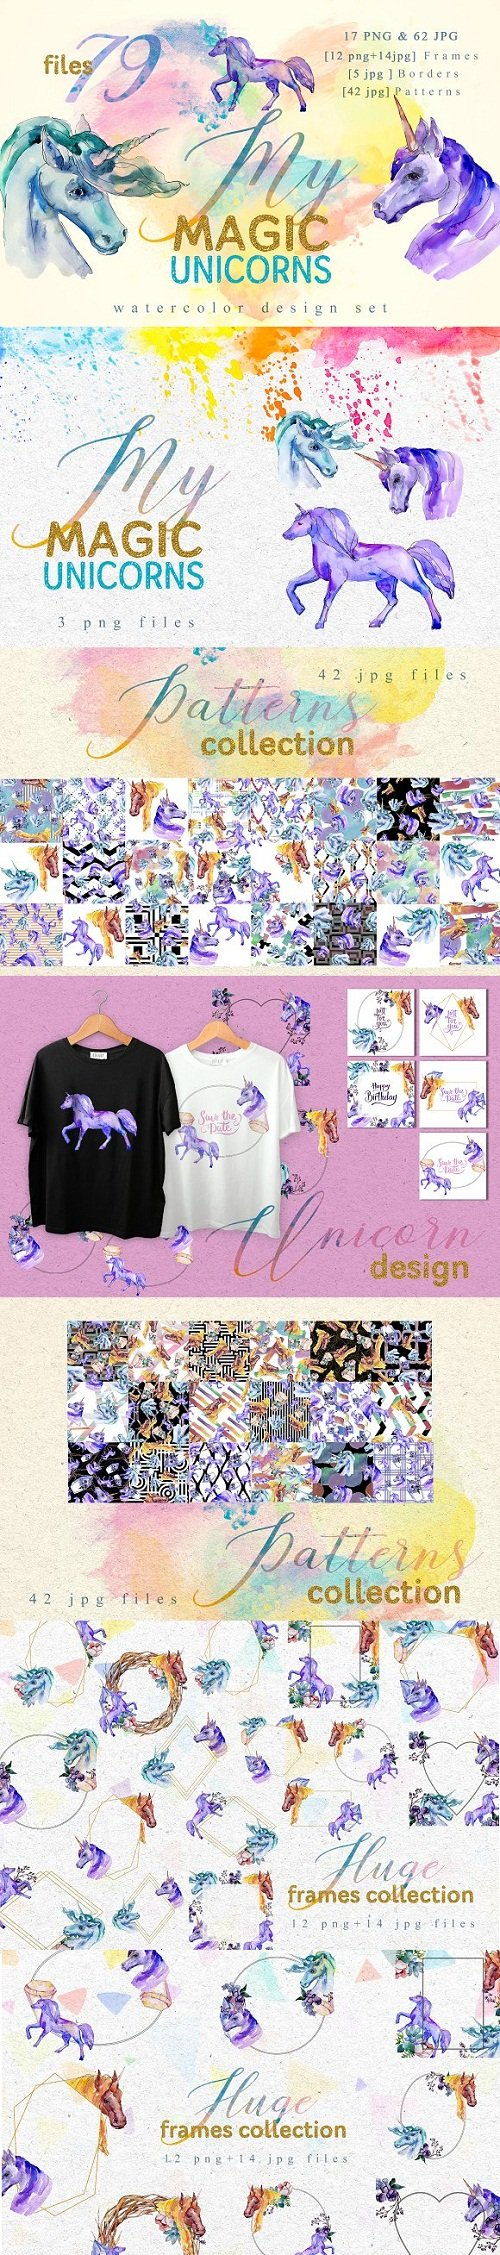 Magic Unicorn Watercolor png - 3348350